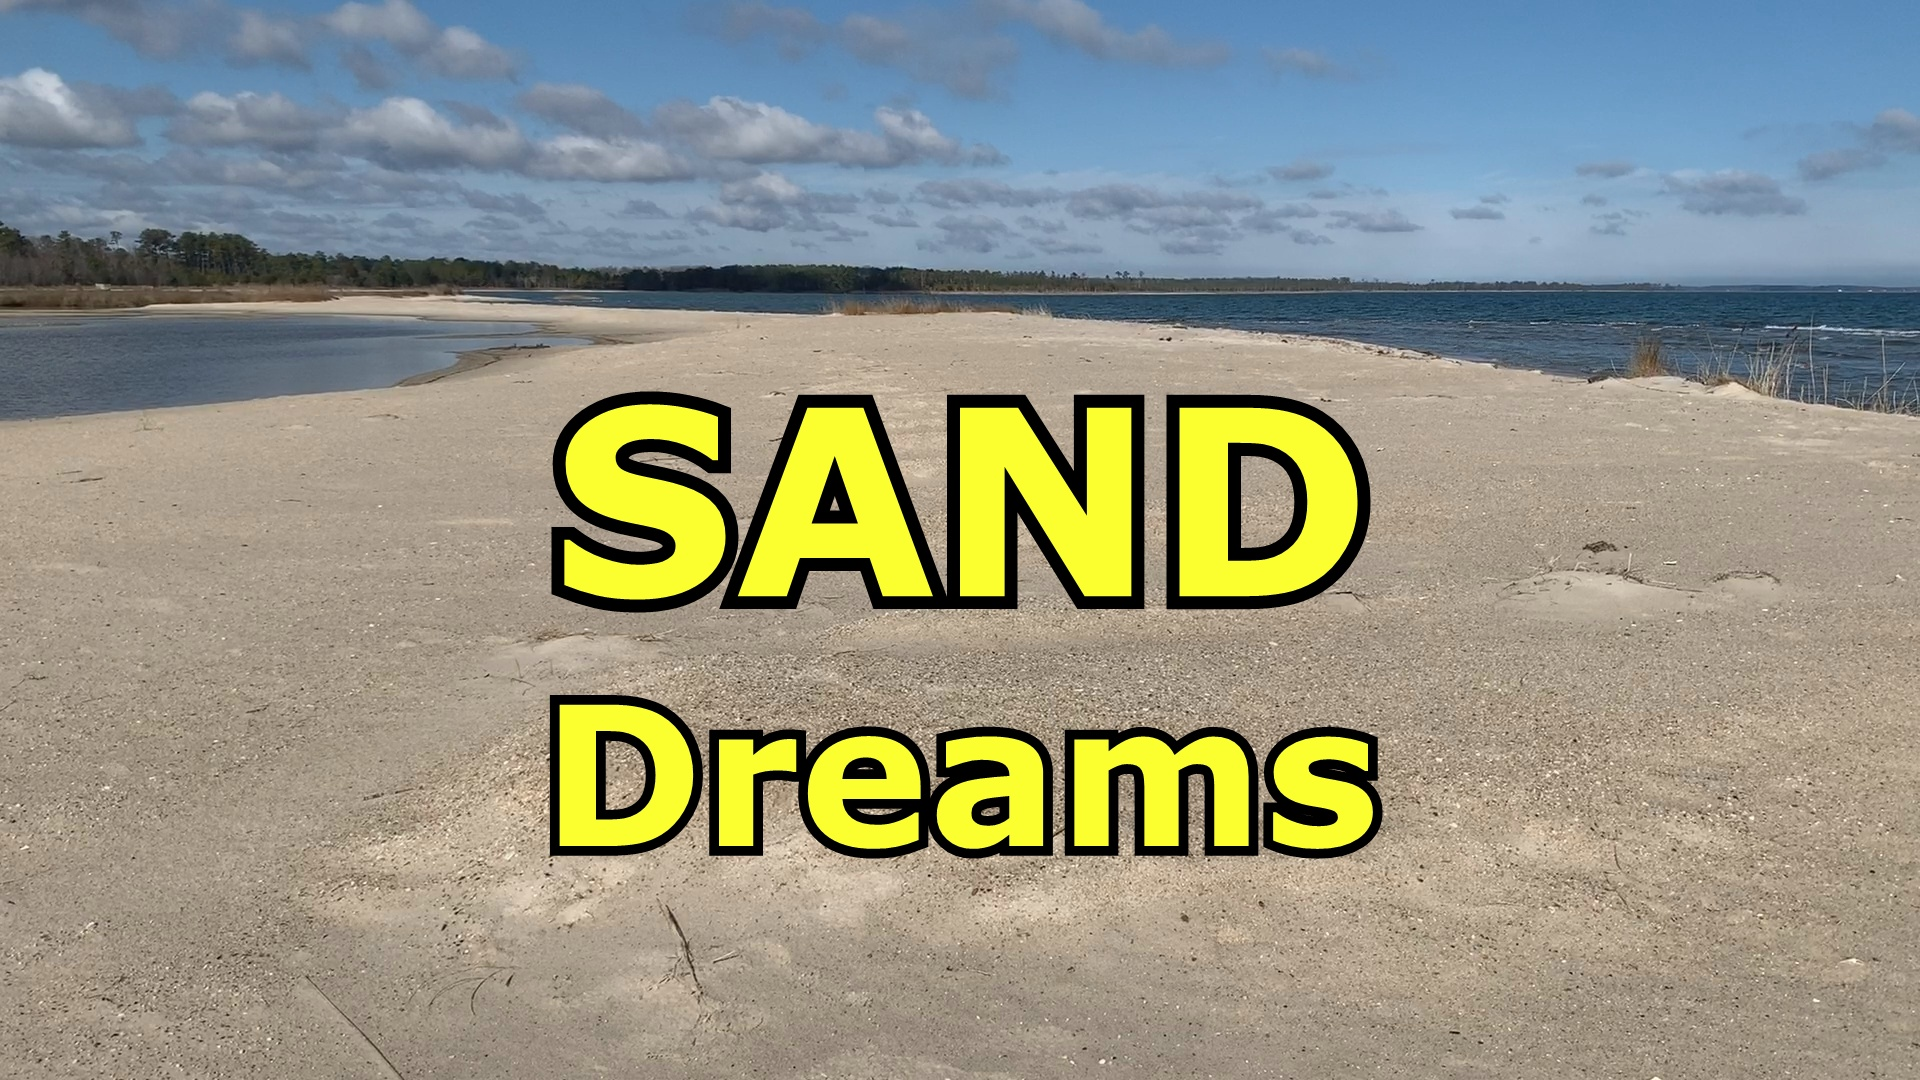 Dreaming of Beach Sand - What Does It Mean